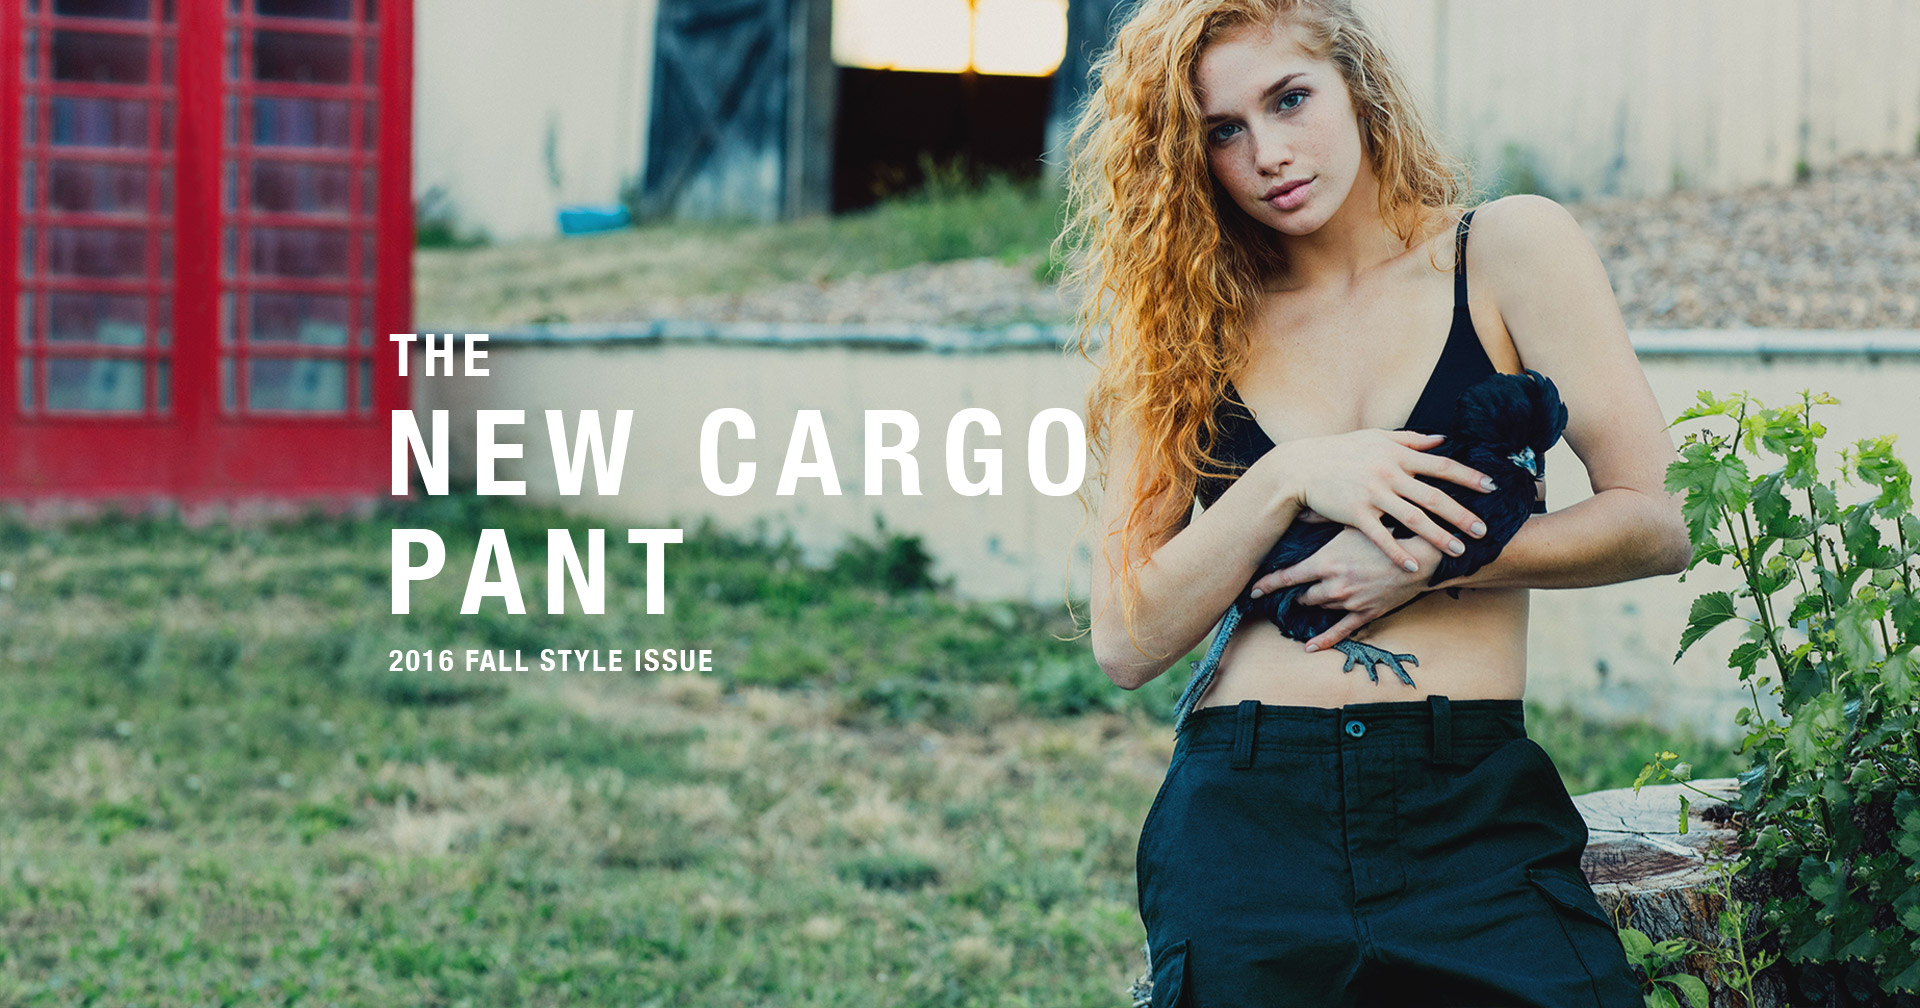 The New Cargo Pant